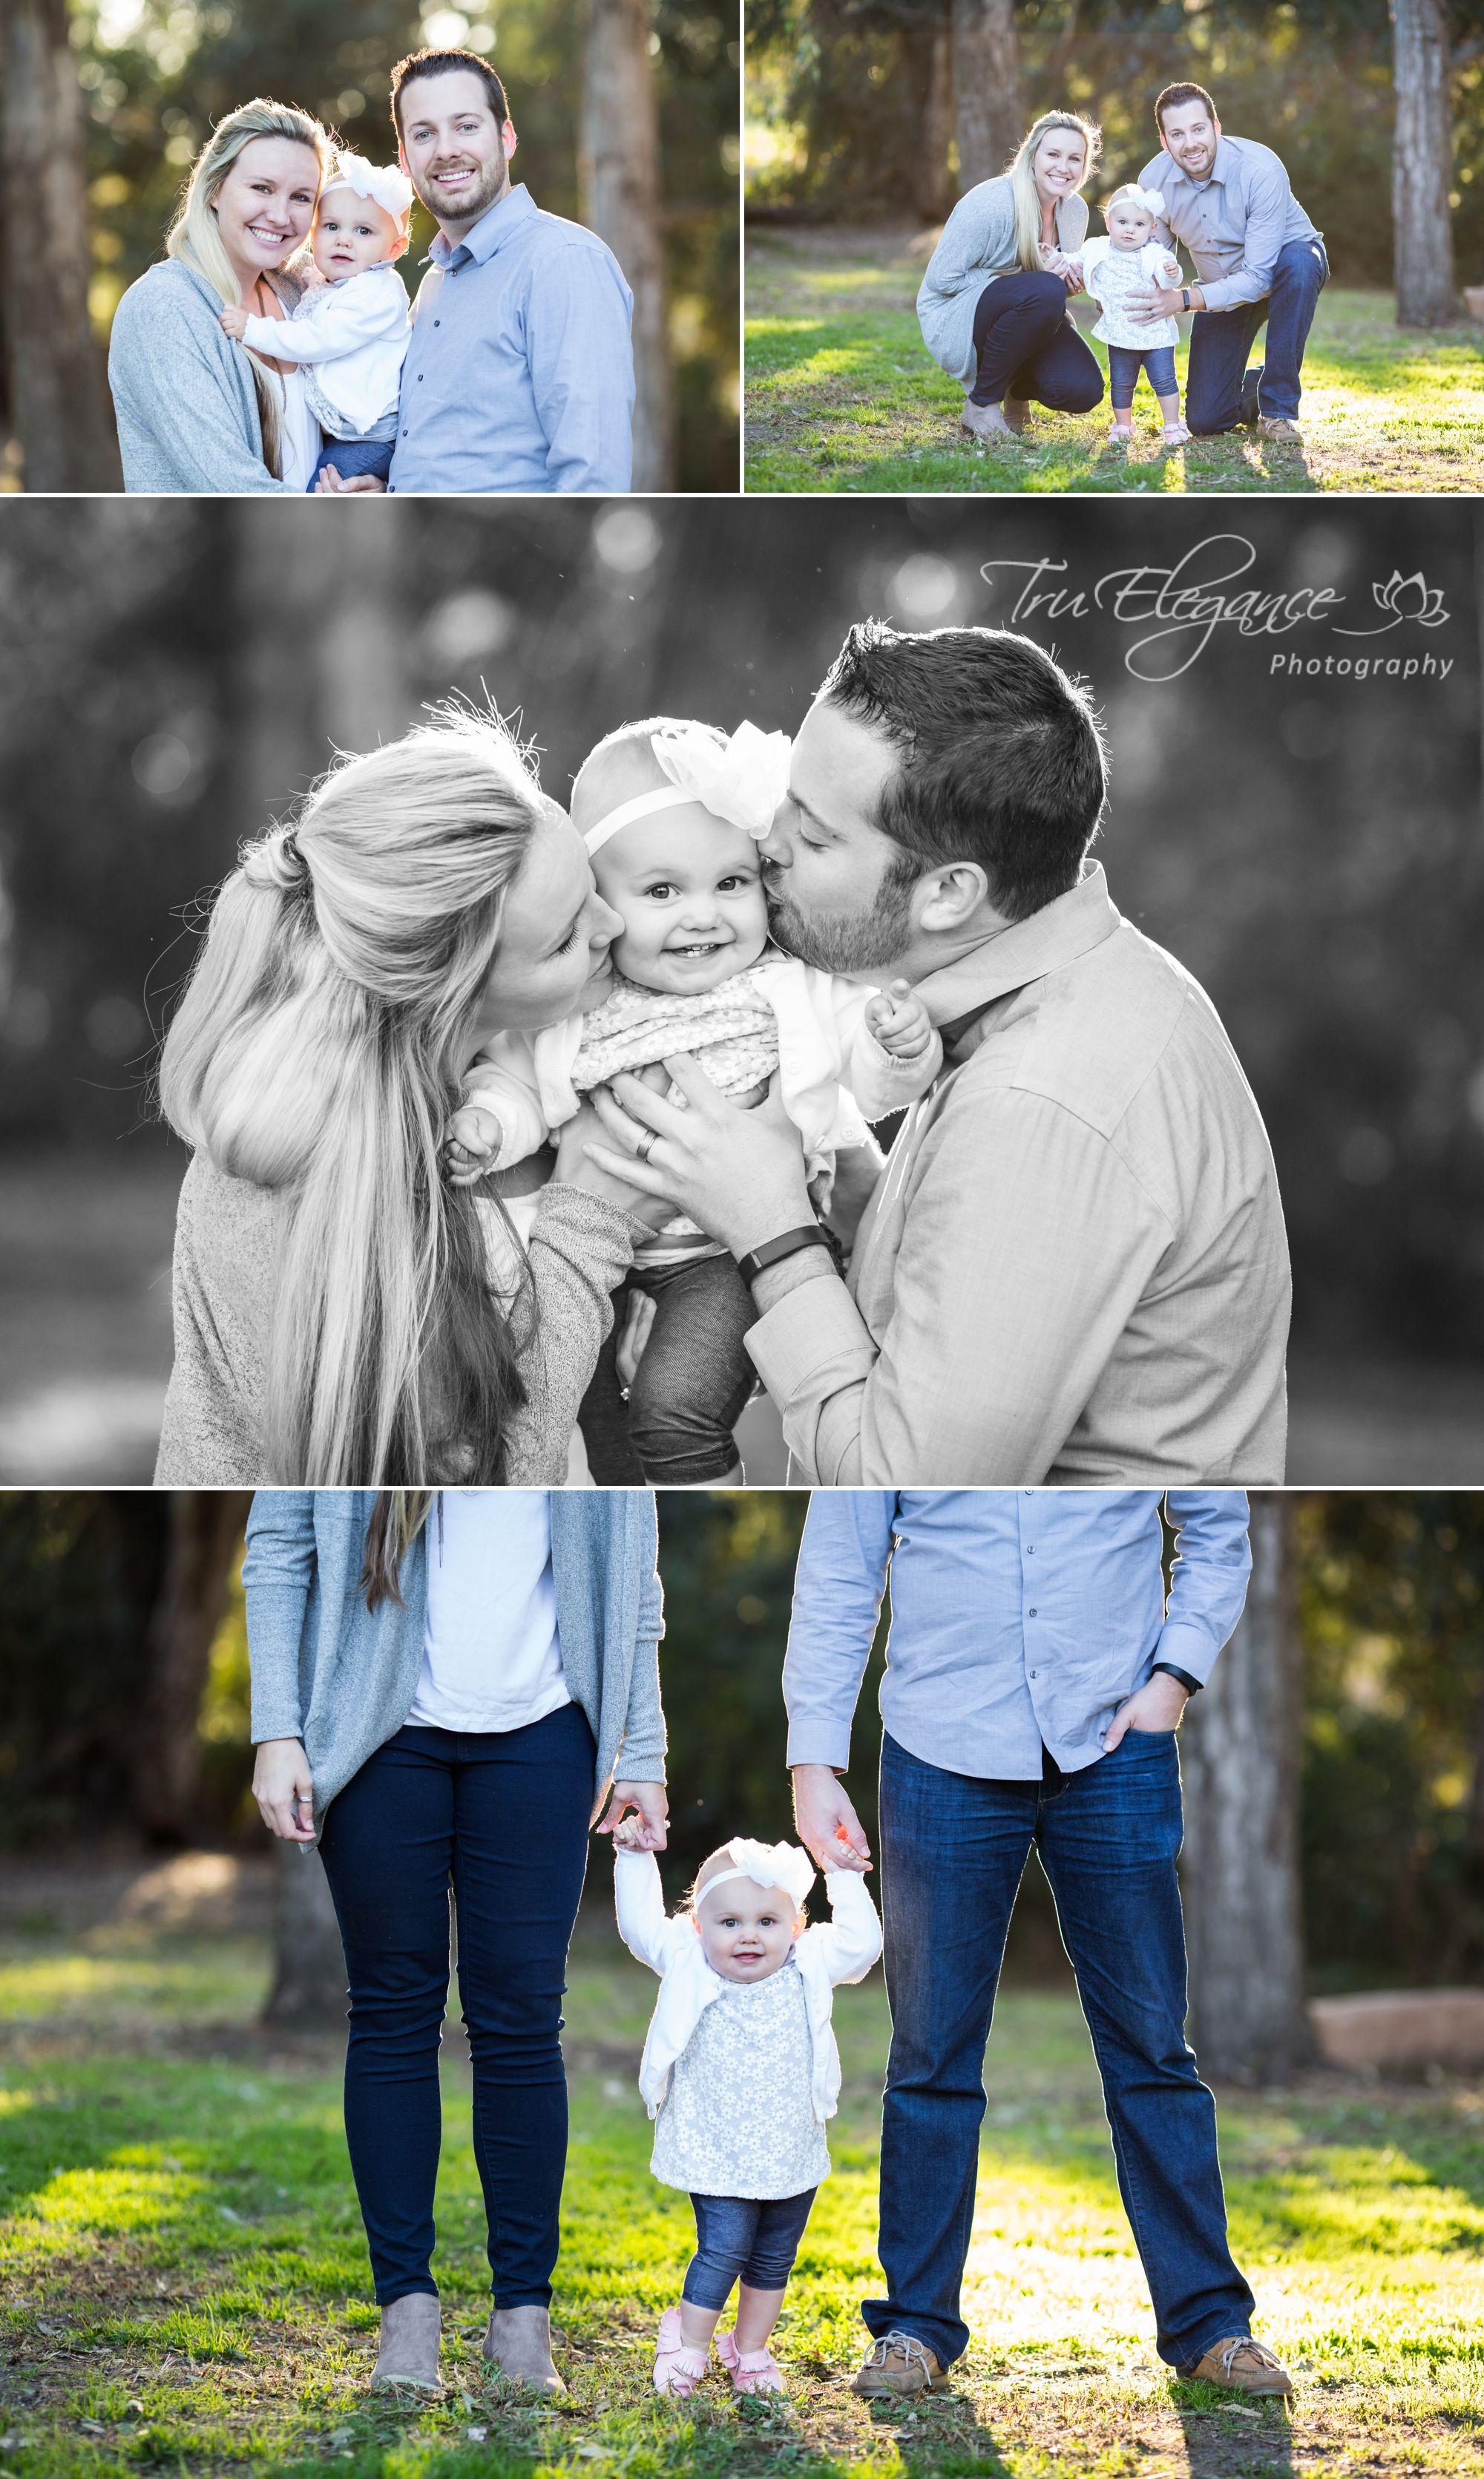 Outdoor Portrait Of A: Outdoor Family Portrait Shoot